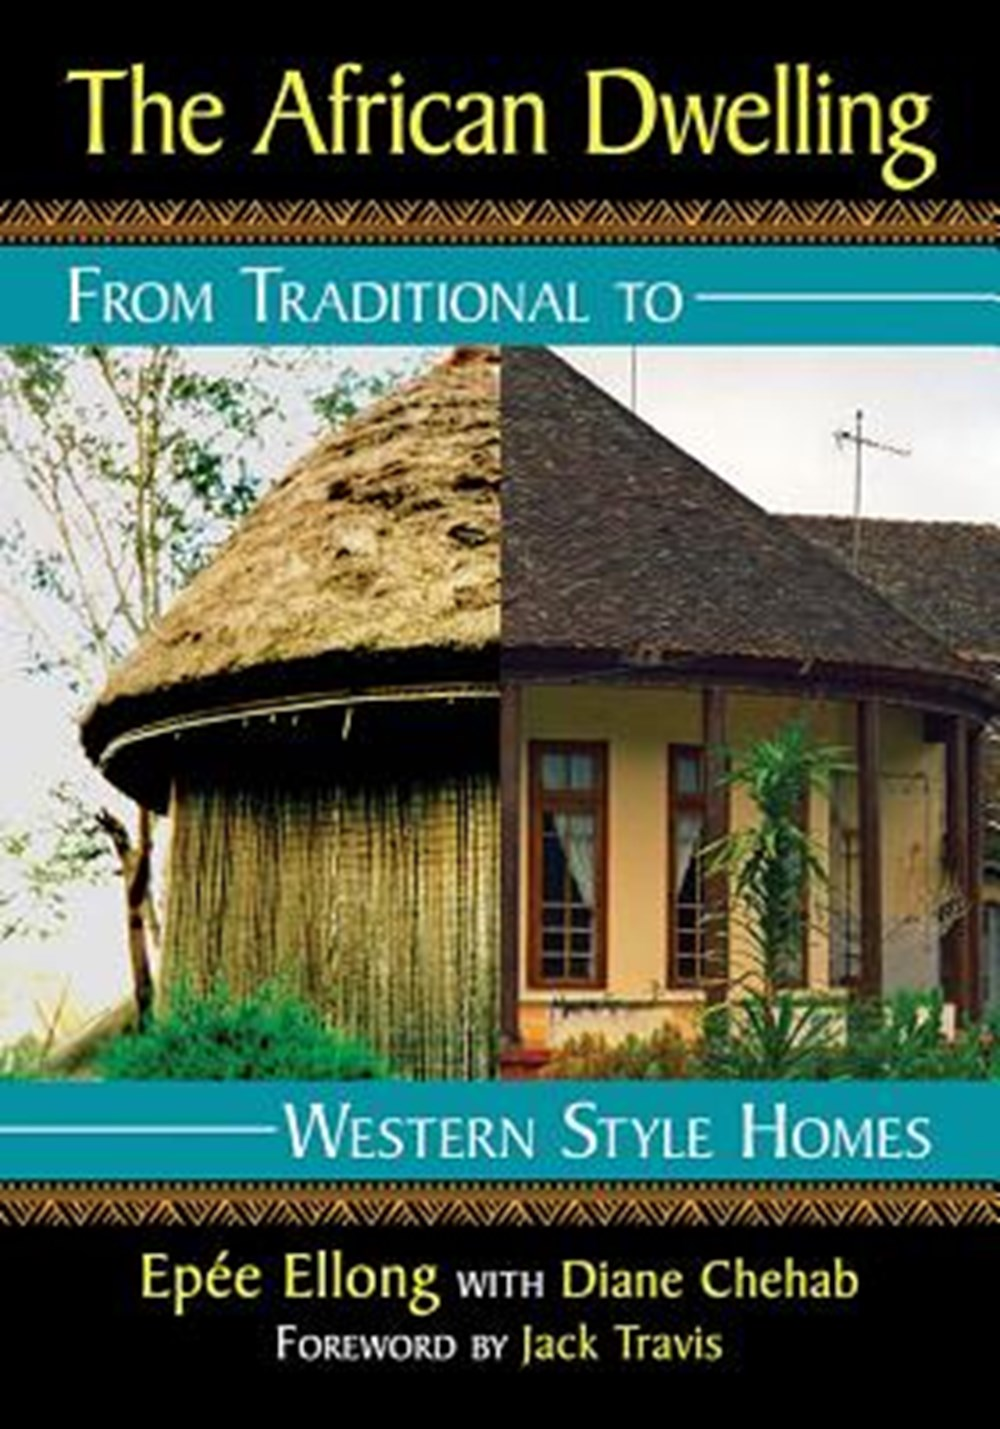 African Dwelling From Traditional to Western Style Homes